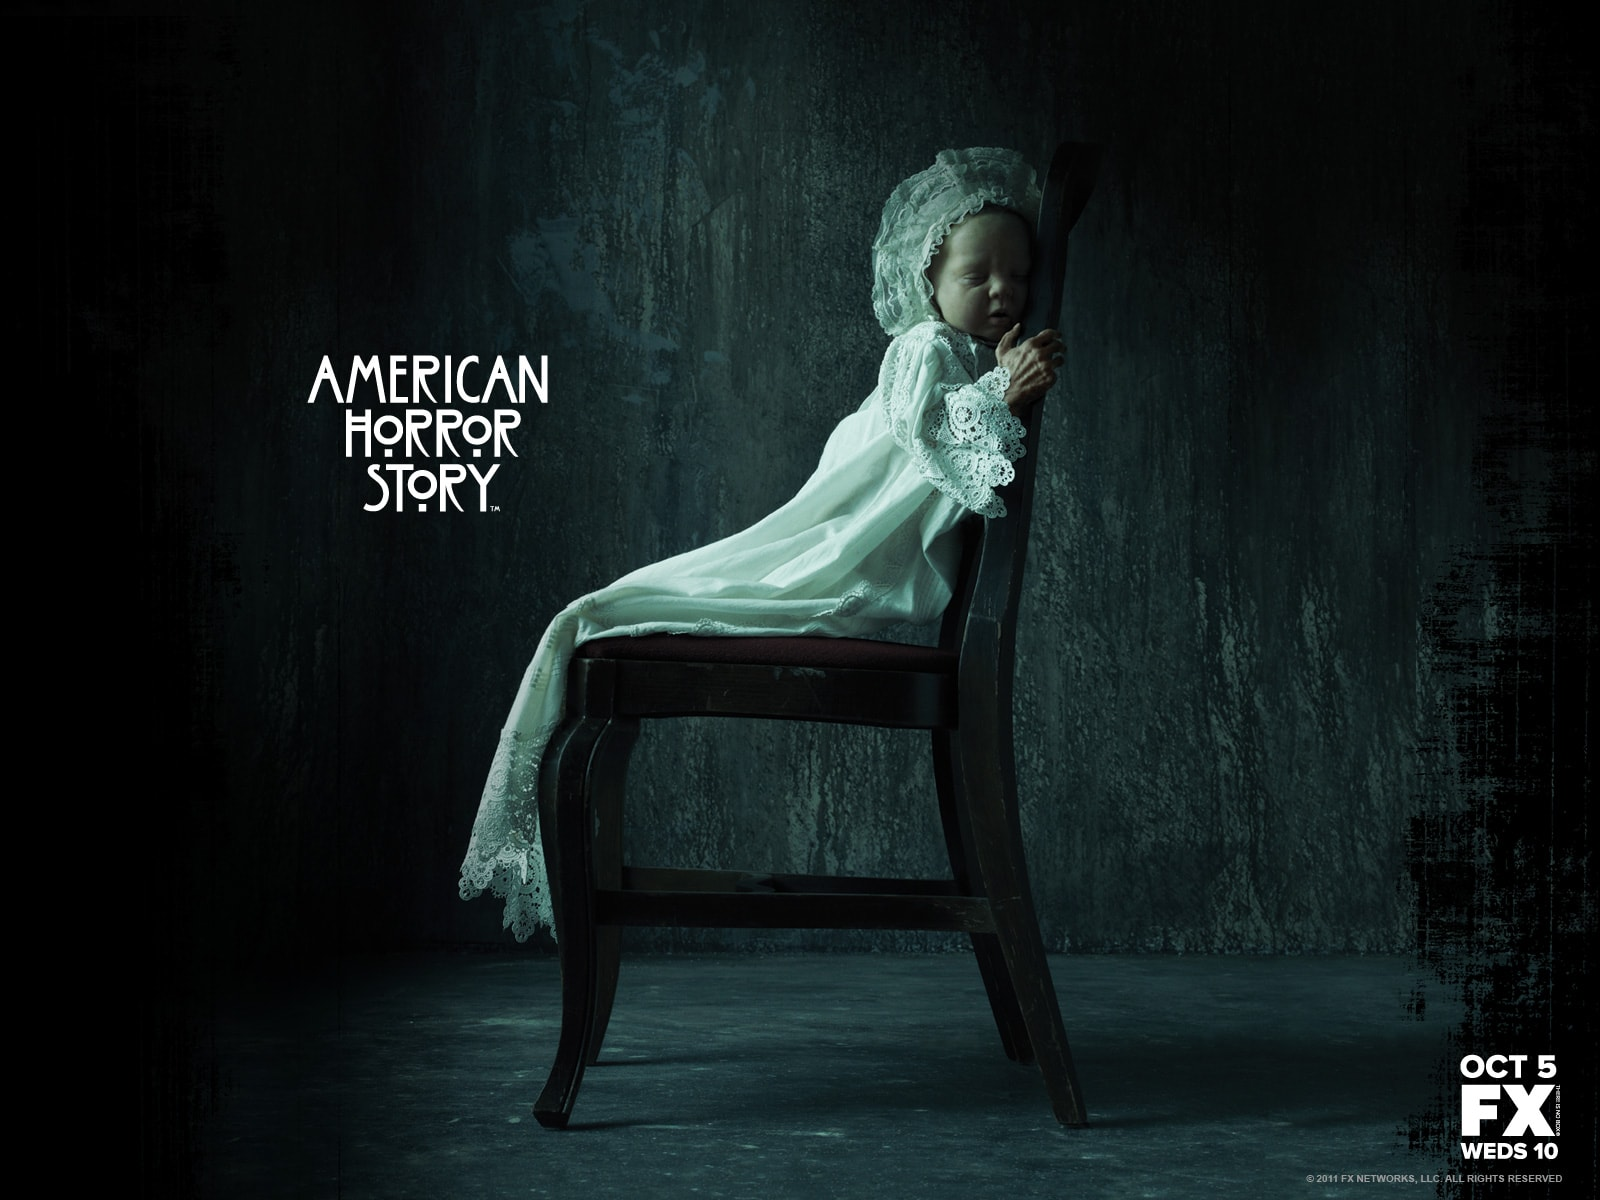 American Horror Story Hd Wallpapers 7wallpapers Net